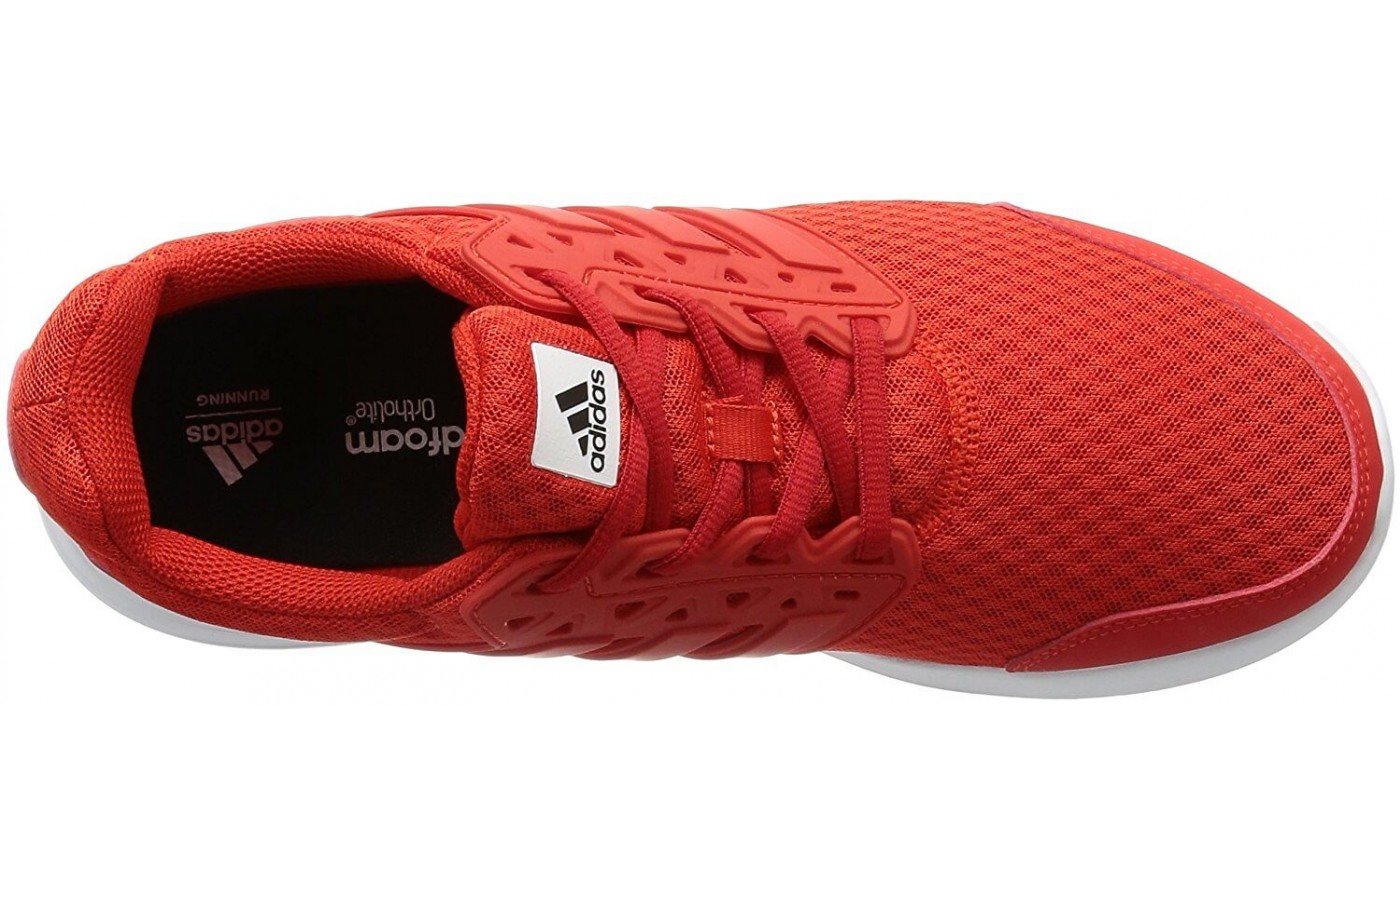 The Adidas Galaxy 3 has an OrthoLite sockliner